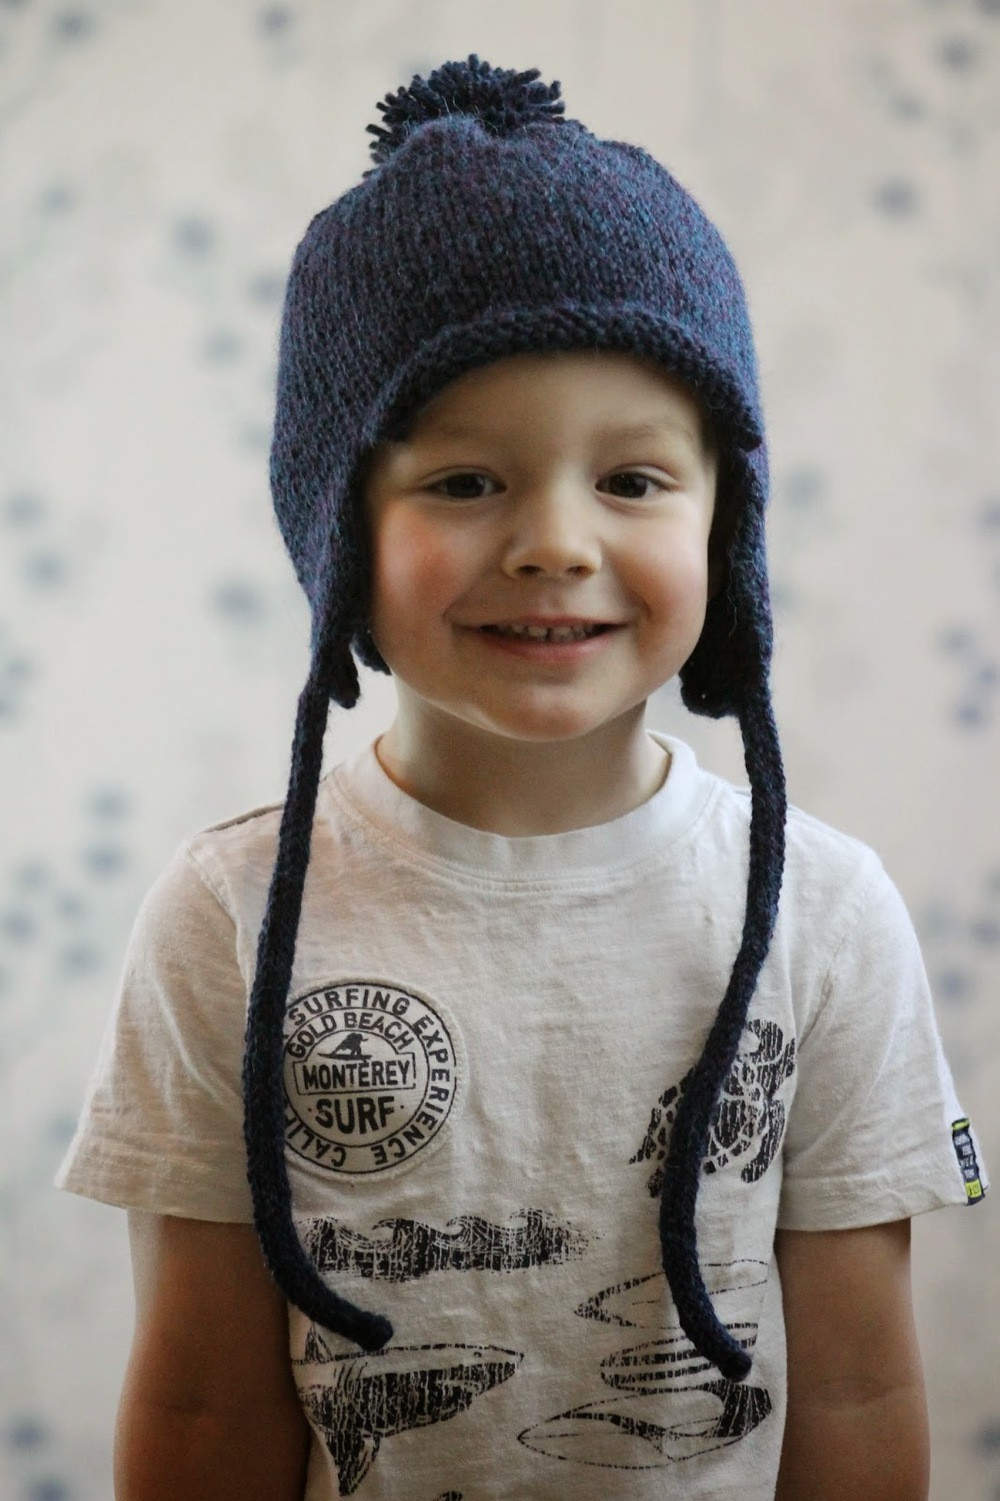 Awesome All In the Family Earflap Hat Knit Hat with Ear Flaps Of Marvelous 50 Pics Knit Hat with Ear Flaps